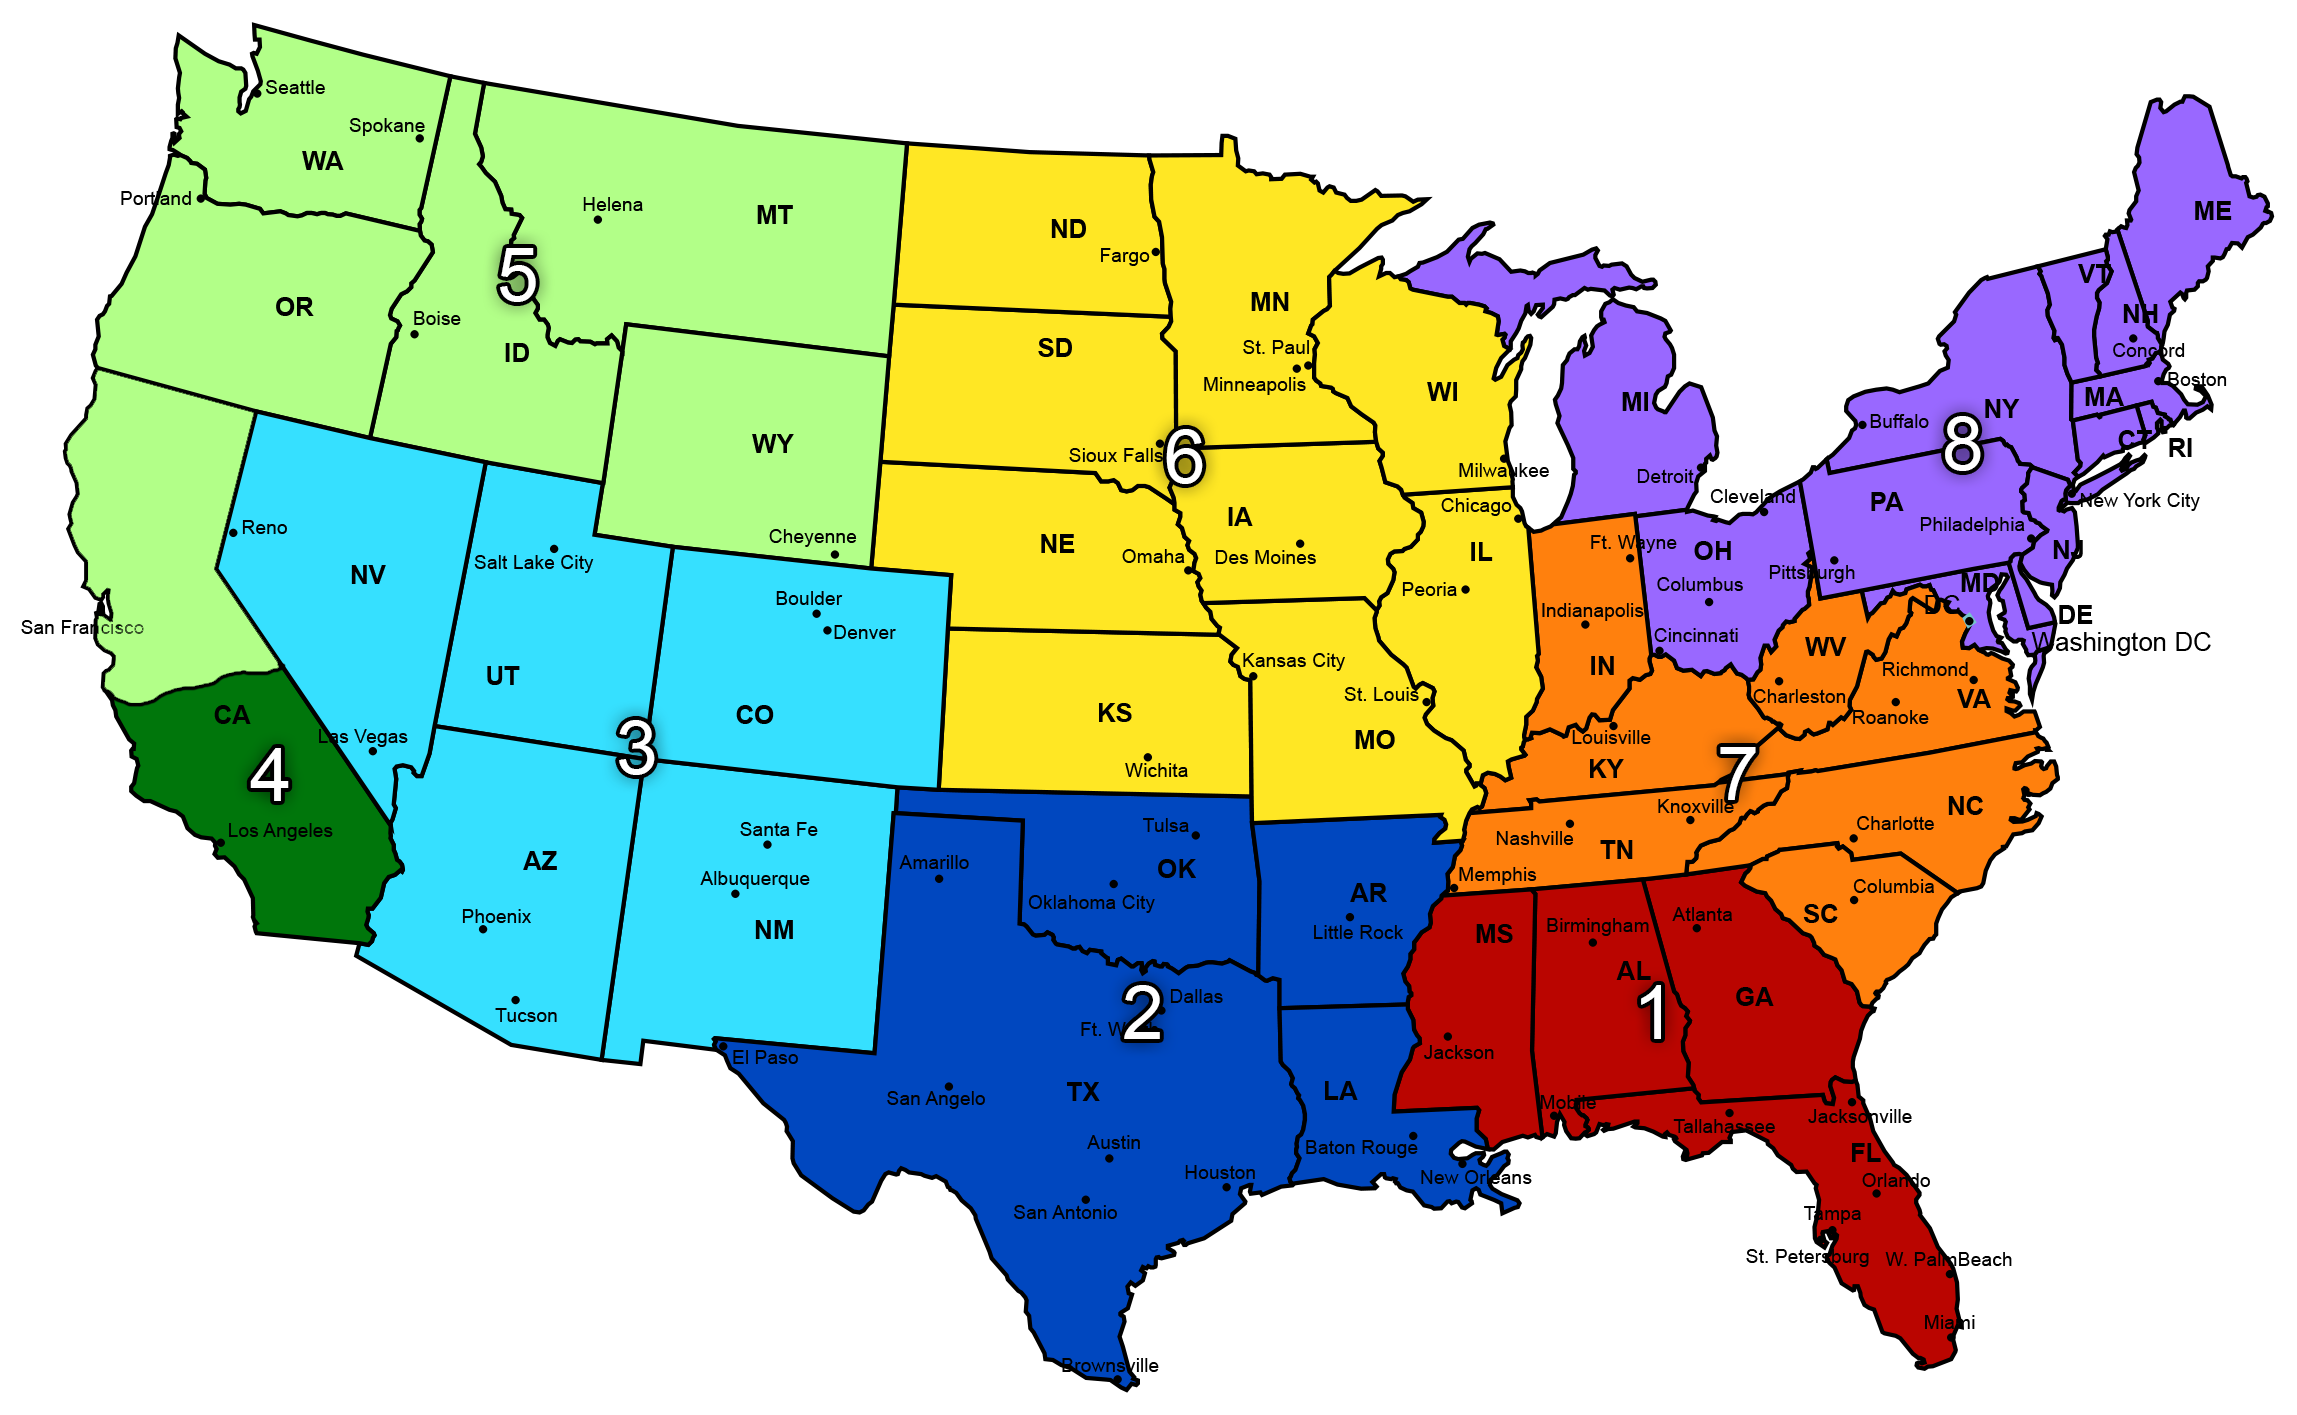 USA Elite Select - Regional us map